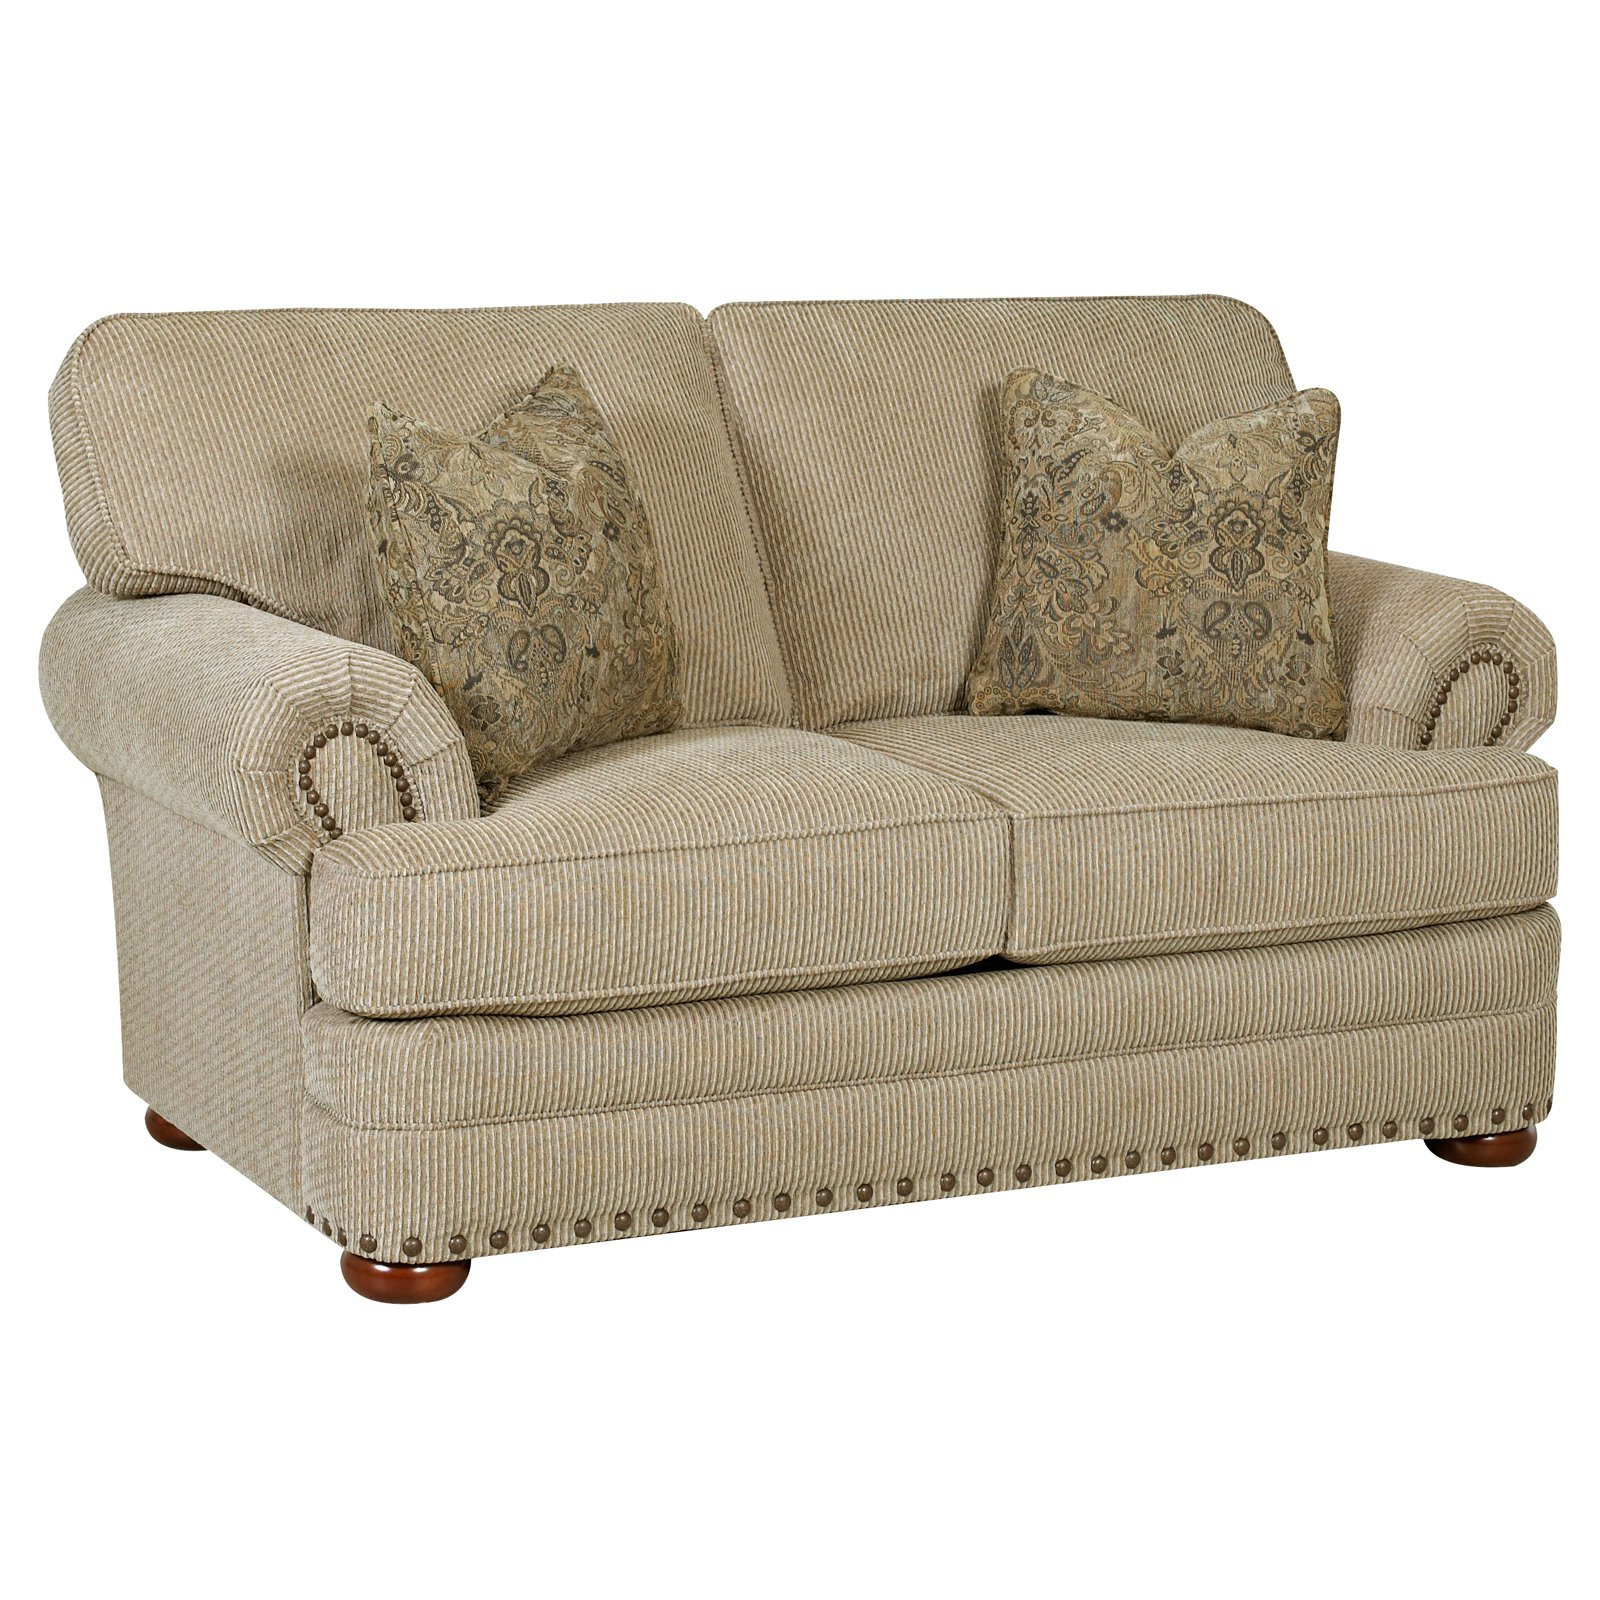 Klaussner Cliffside Fabric Loveseat by Overstock